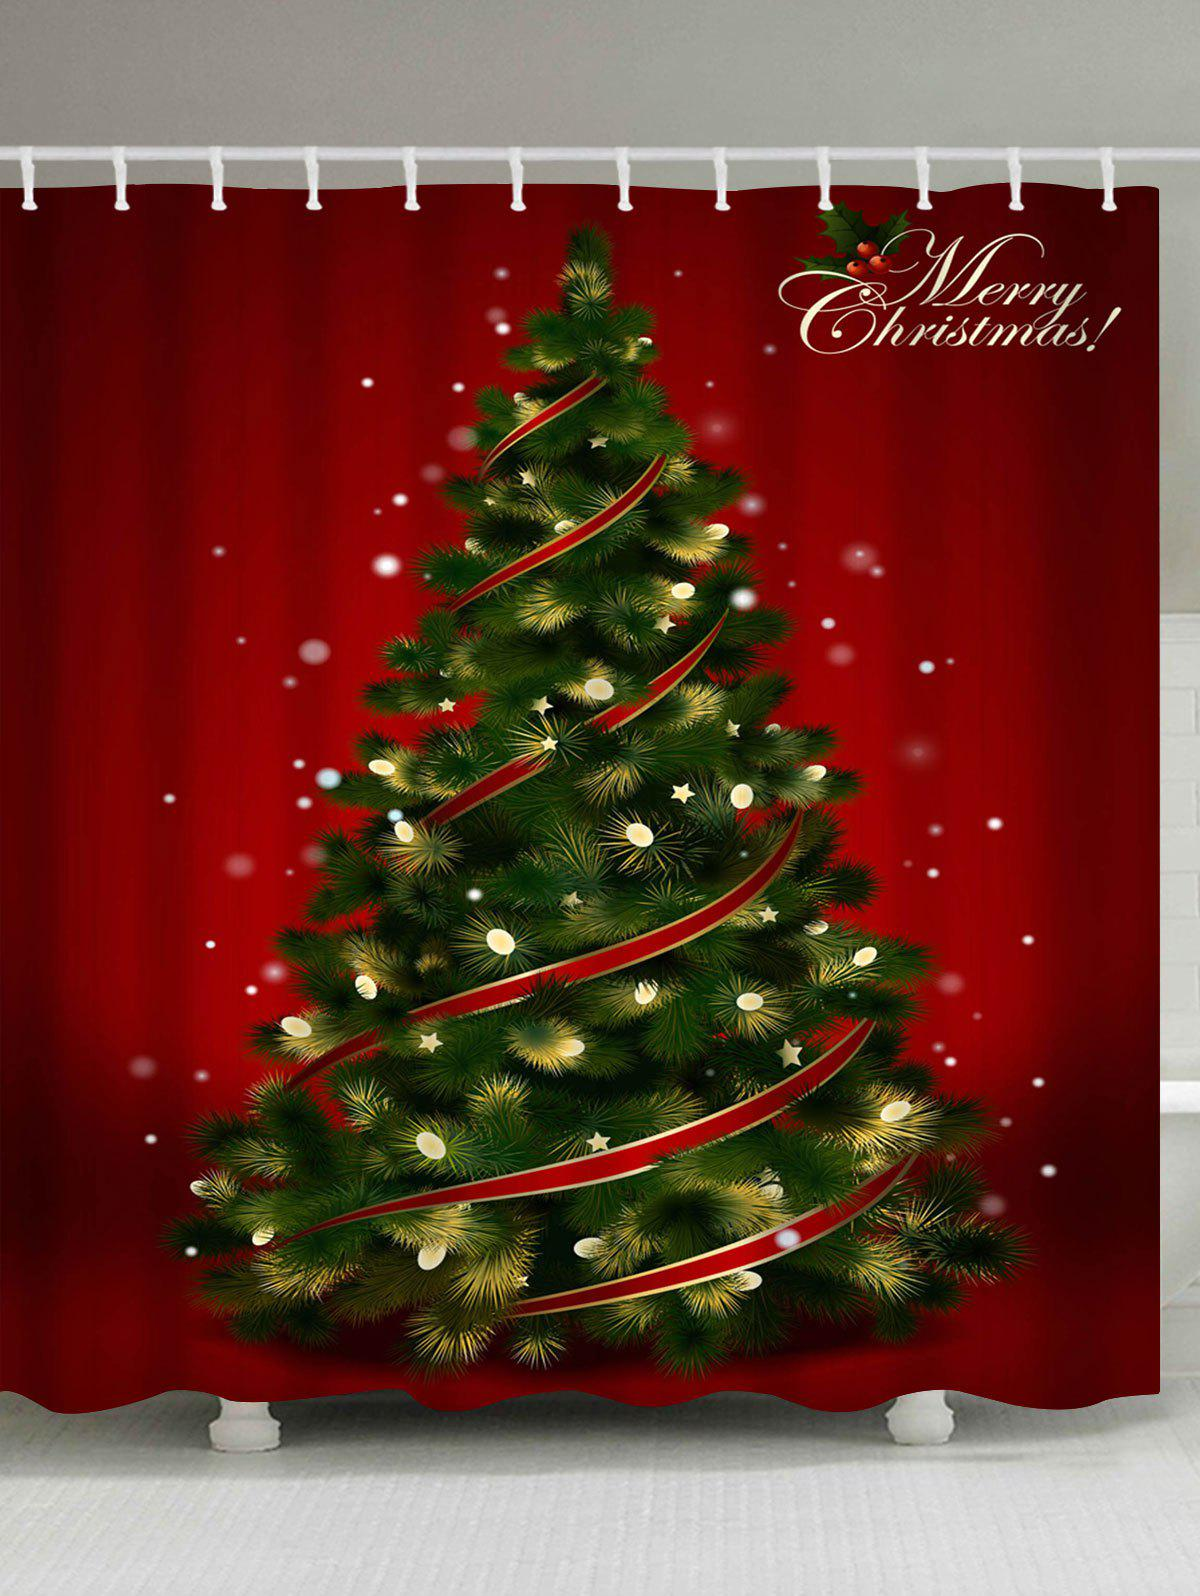 Polyester Waterproof Christmas Tree Print Bath CurtainHOME<br><br>Size: W71 INCH * L79 INCH; Color: RED; Products Type: Shower Curtains; Materials: Polyester; Pattern: Christmas Tree; Style: Festival; Number of Hook Holes: W59 inch*L71 inch: 10; W71 inch*L71 inch: 12; W71 inch*L79 inch: 12; Package Contents: 1 x Shower Curtain 1 x Hooks (Set);